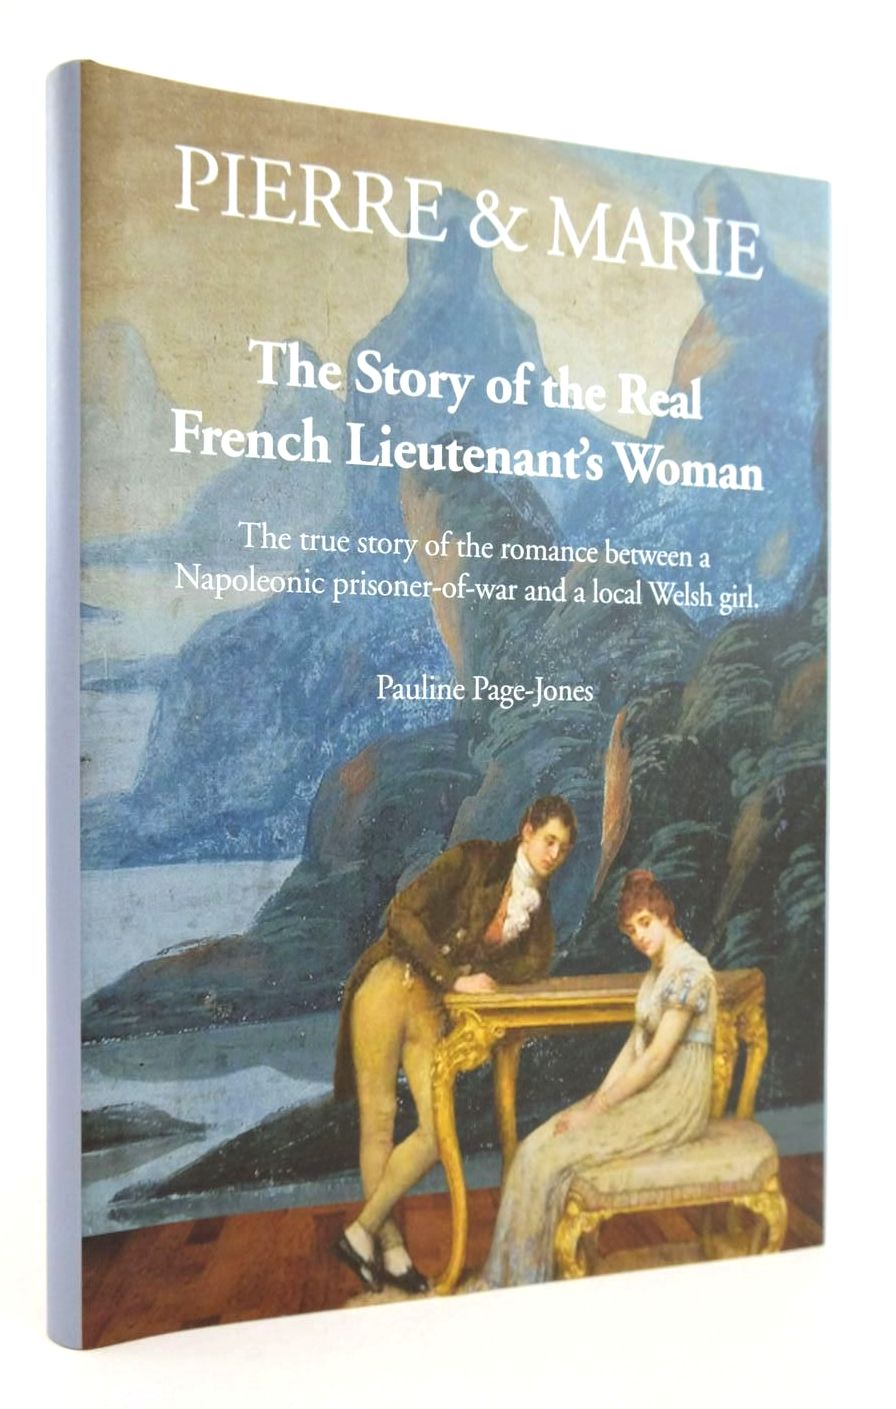 Photo of PIERRE & MARIE THE STORY OF THE REAL FRENCH LIEUTENANT'S WOMAN- Stock Number: 2132312